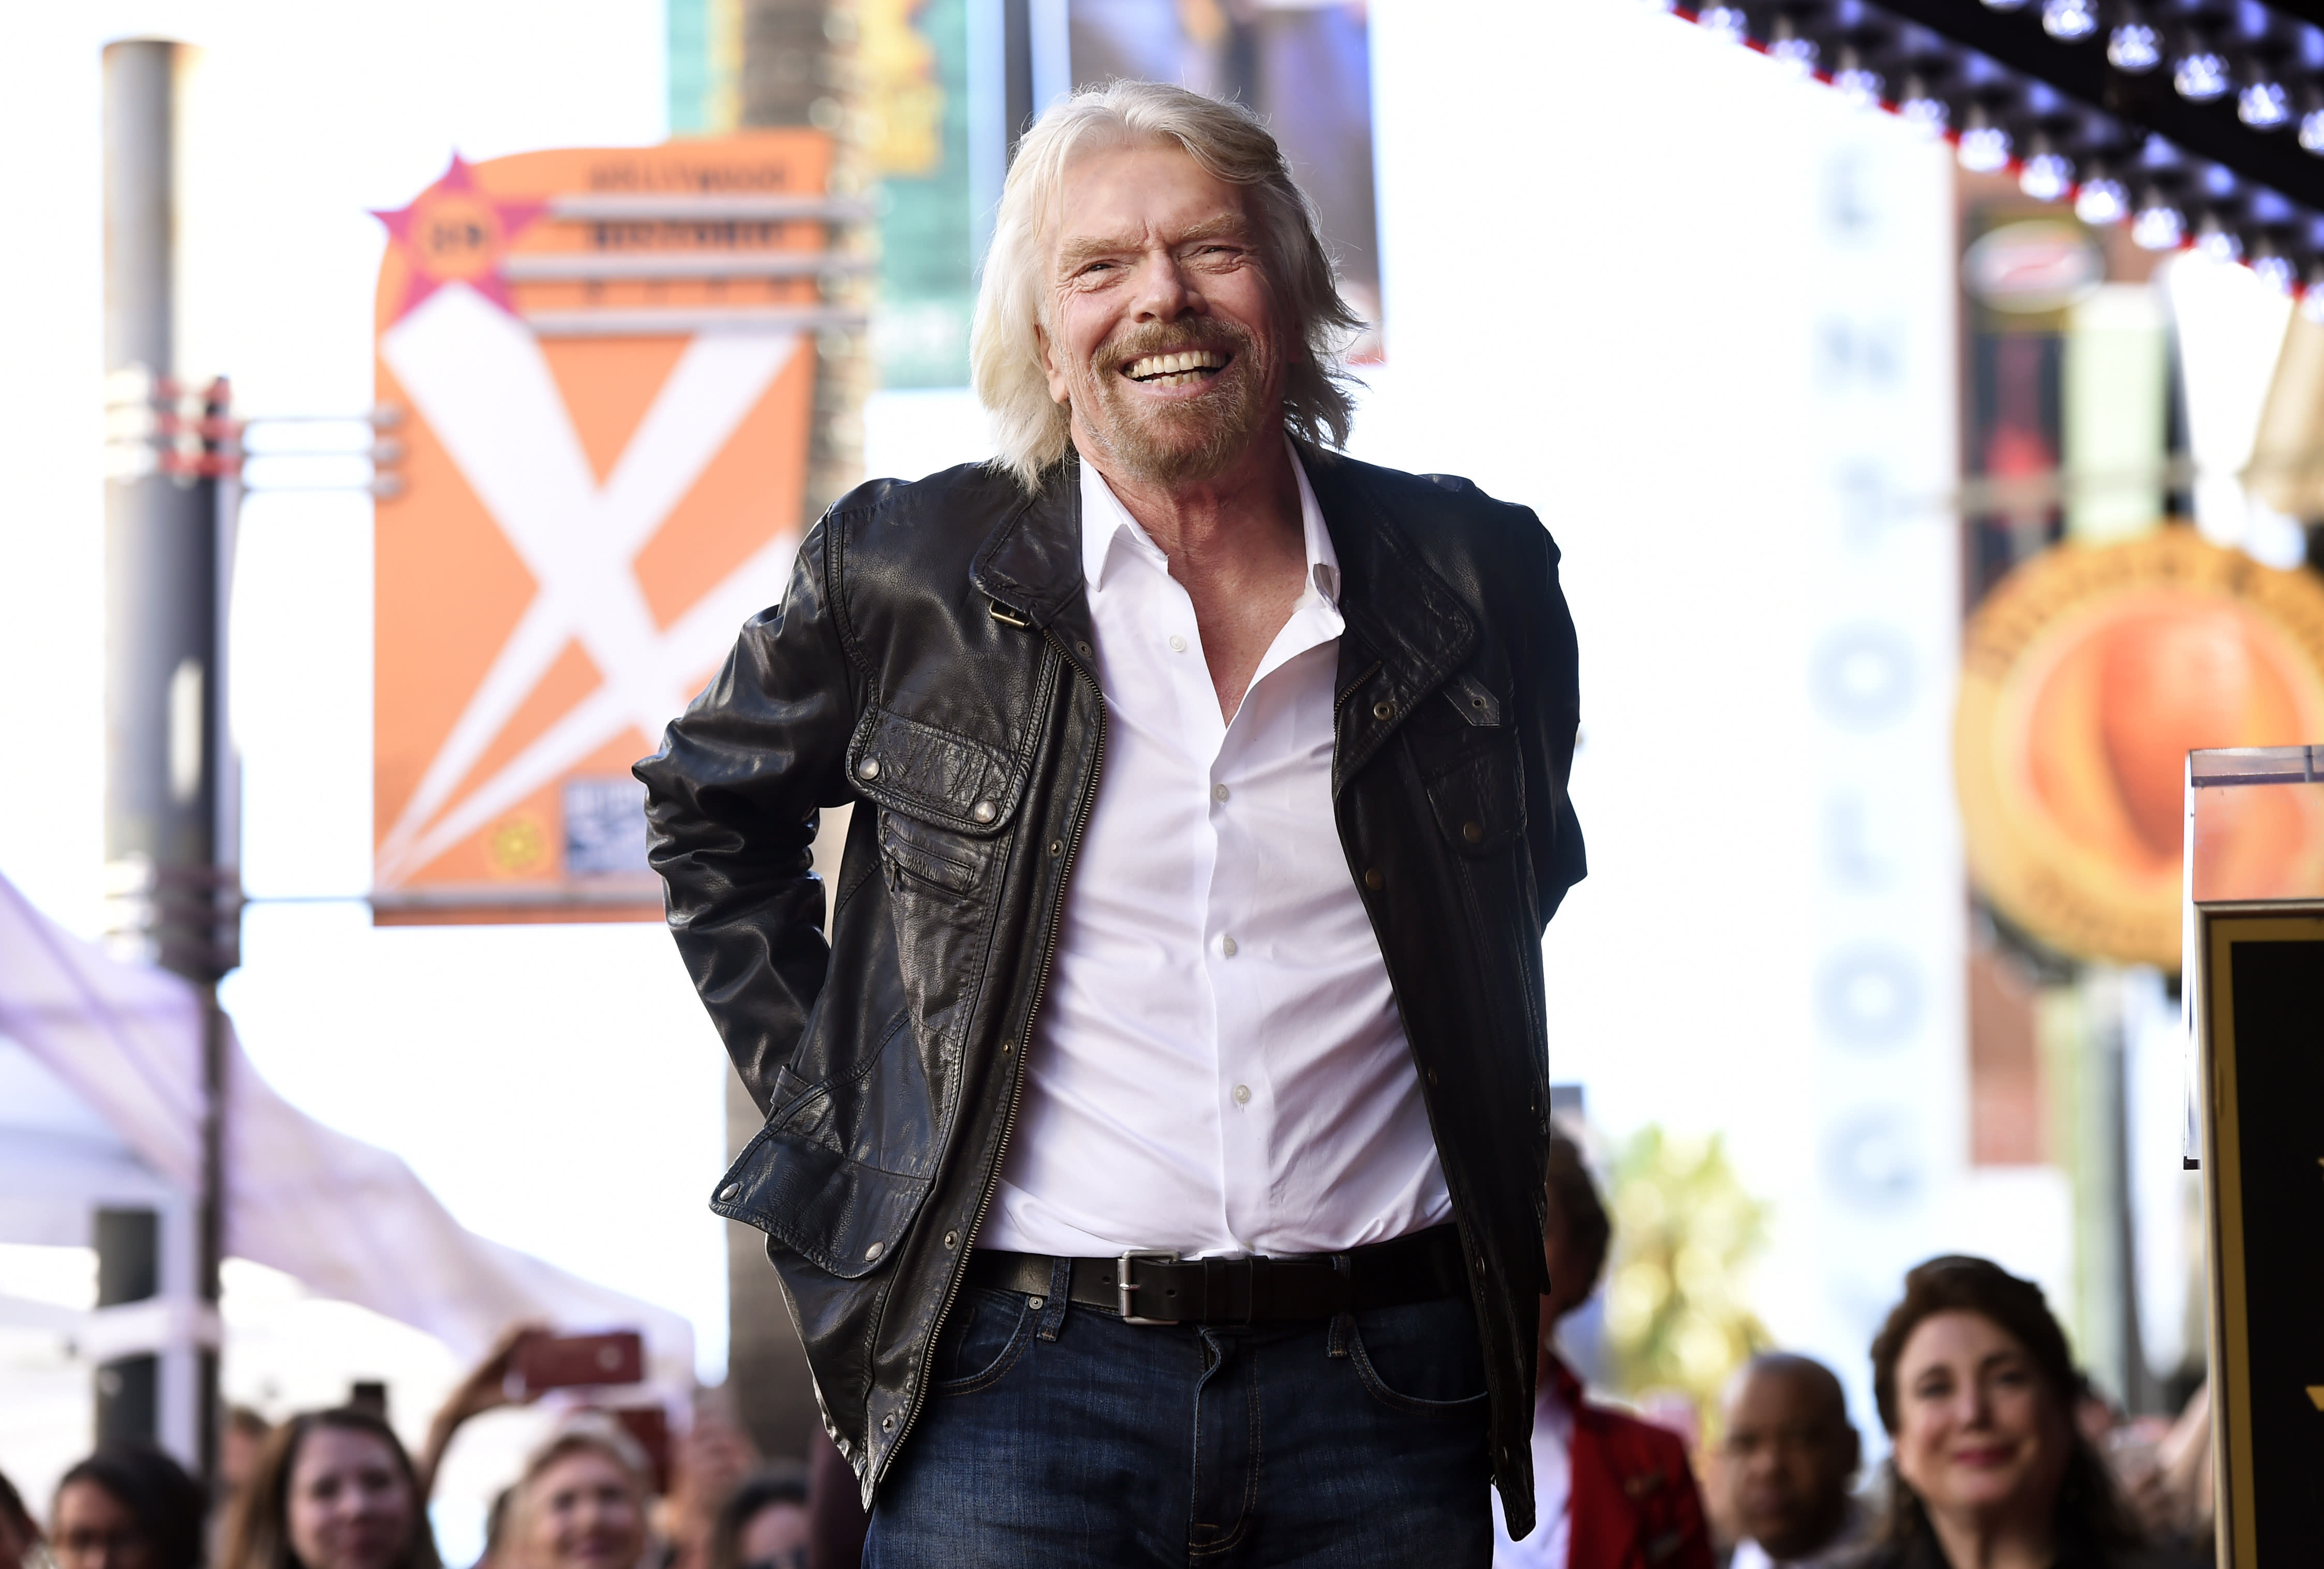 "FILE - In this Oct. 16, 2018 file photo, British business magnate Richard Branson appears at a ceremony honoring him with a star on the Hollywood Walk of Fame, in Los Angeles. Branson said on Monday, Feb. 18, 2019, that he hopes that the concert that he is throwing for a humanitarian aid effort for Venezuela helps saves lives by raising funds for ""much-needed medical help."" (Photo by Chris Pizzello/Invision/AP File)"